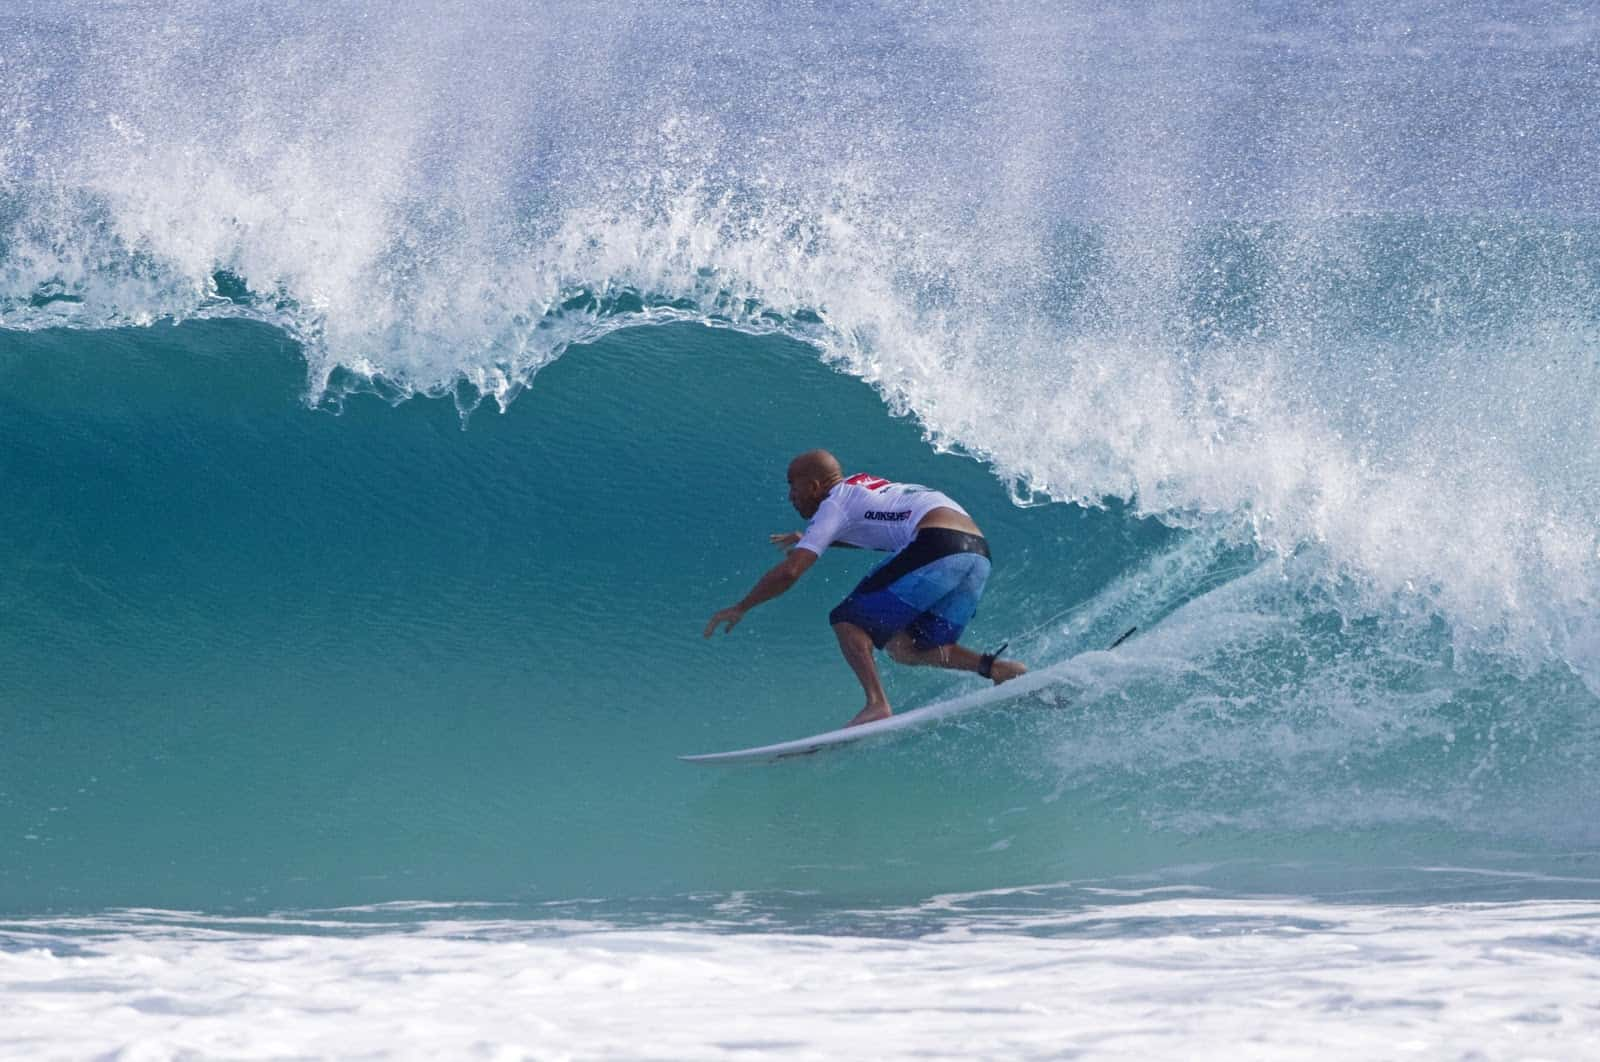 Kelly Slater - The Greatest Surfer Of All Times